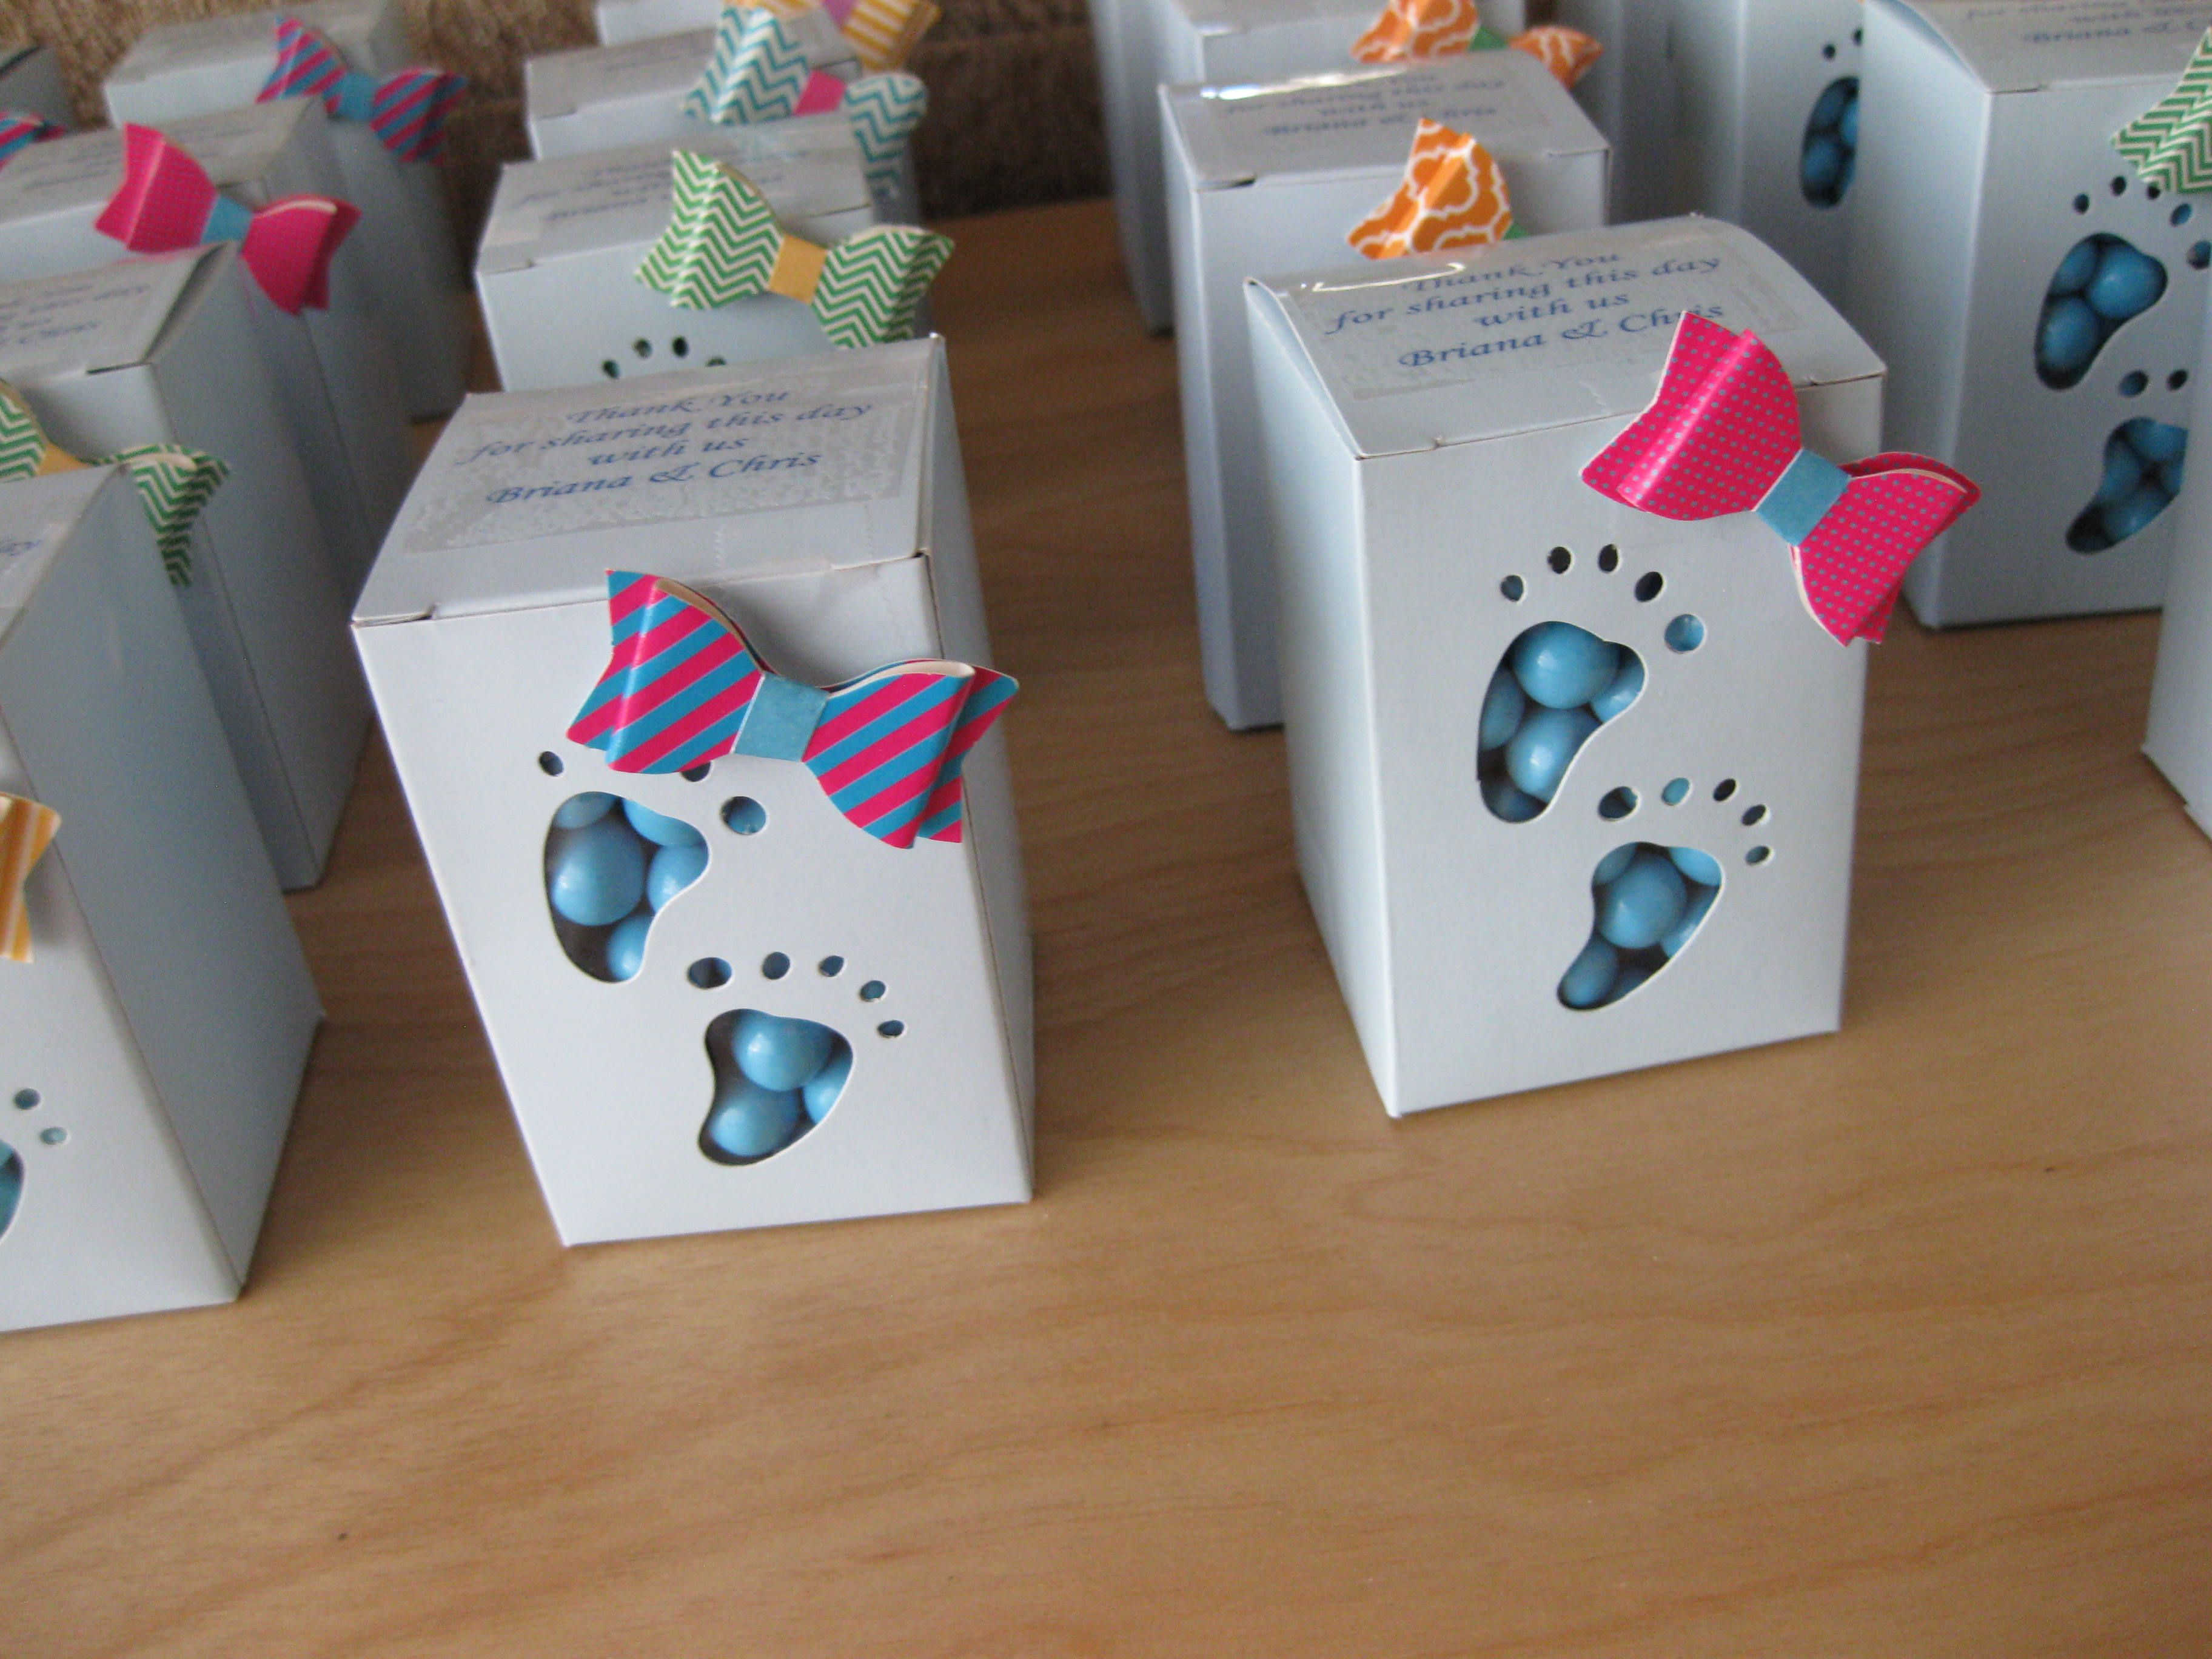 Baby Shower guest gifts